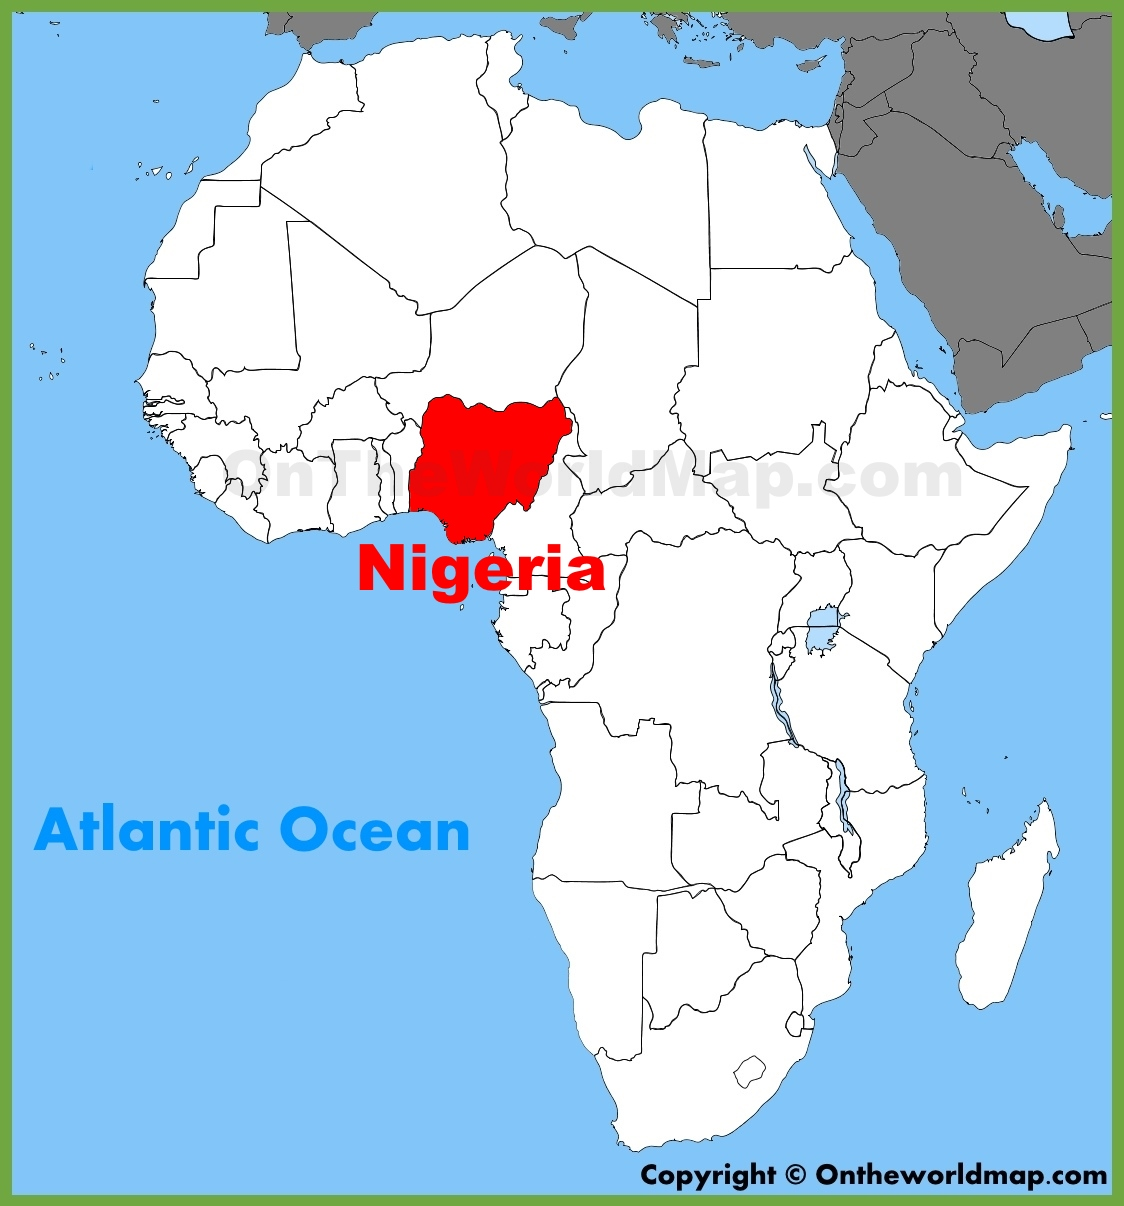 Nigeria location on the Africa map